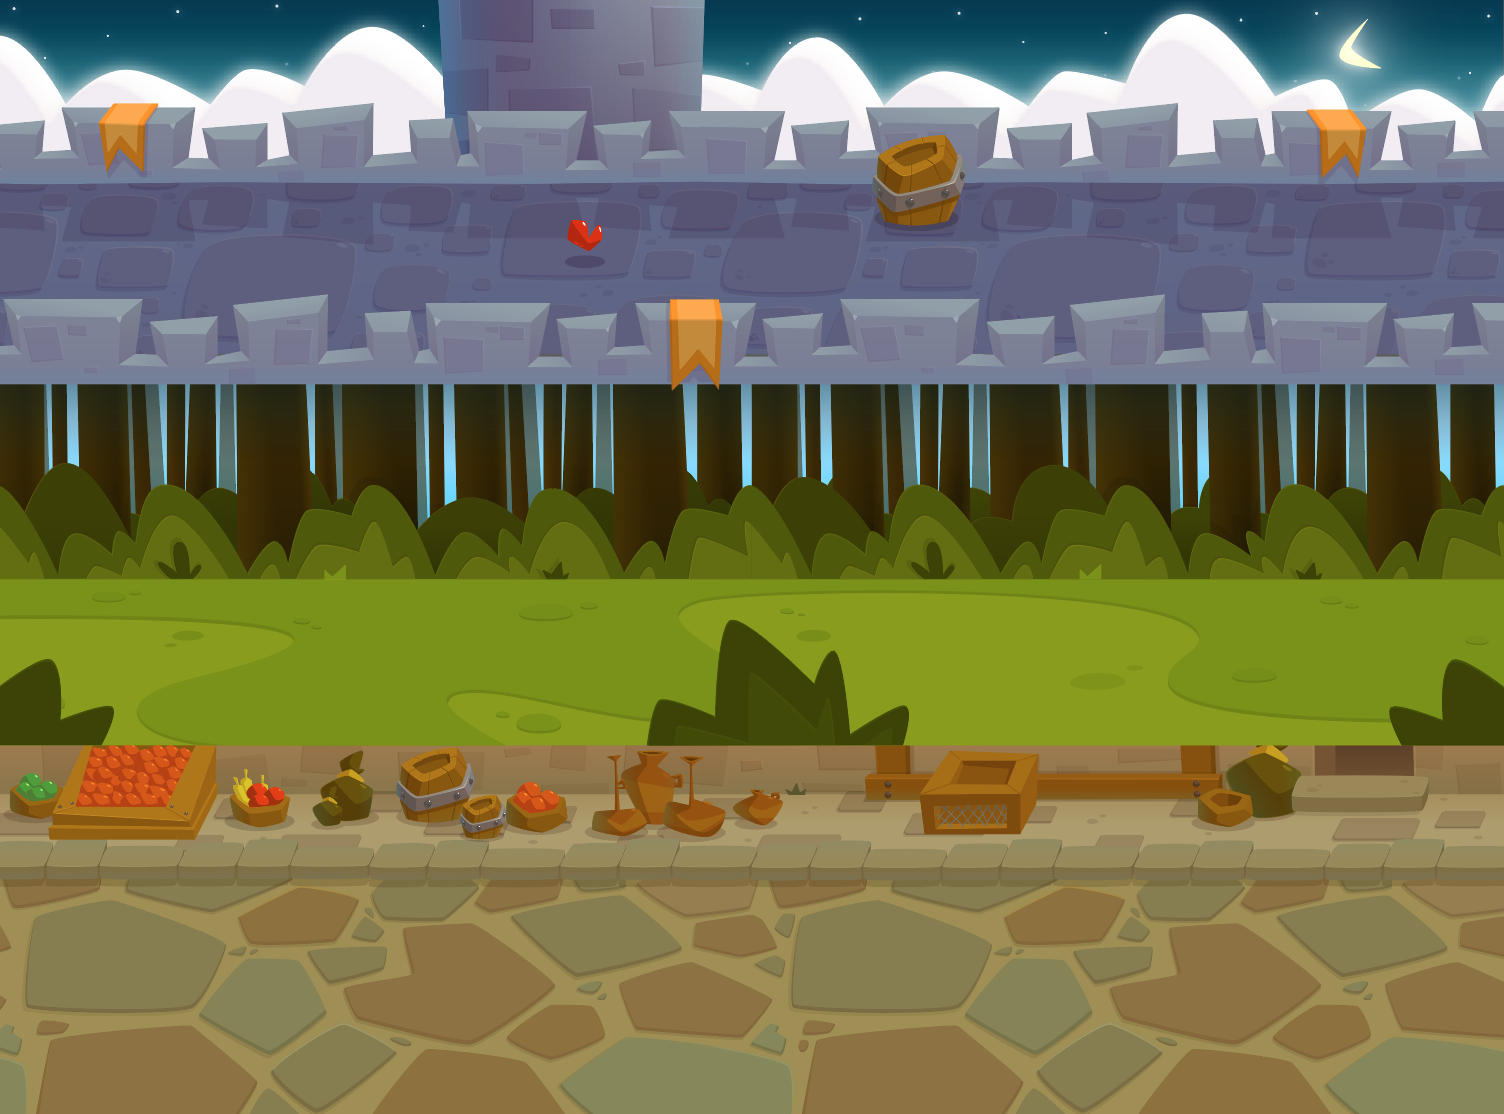 3 Side Scrolling RPG Backgrounds